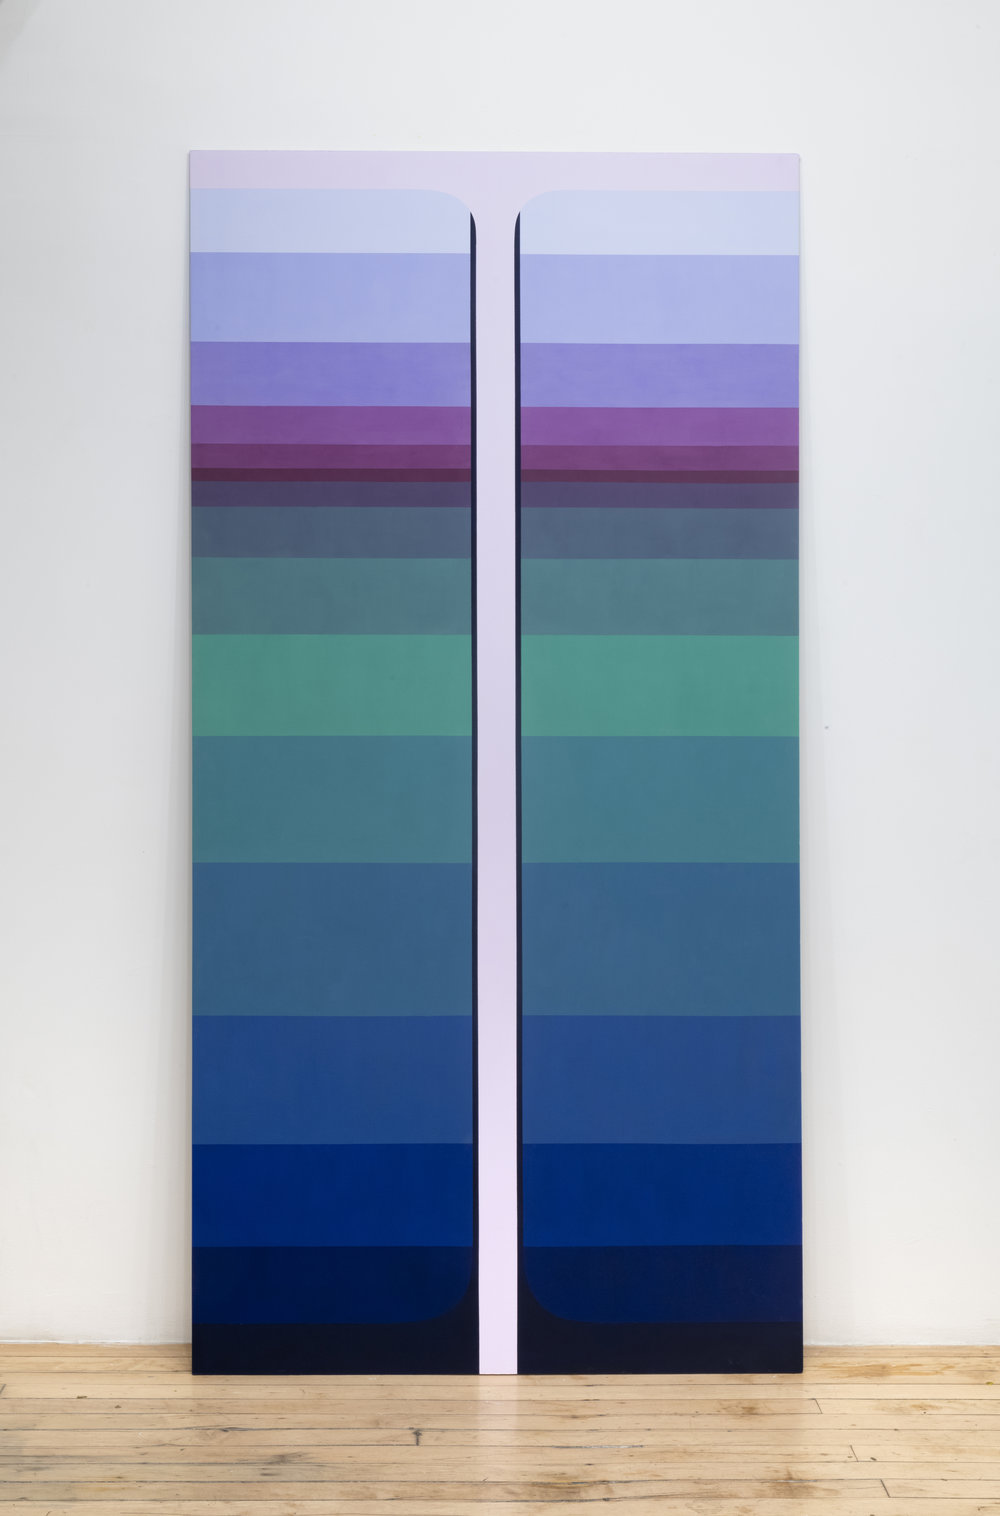 10 - Double Pour, 2018, KT Color on Sheetrock, 8x4 feet.jpg